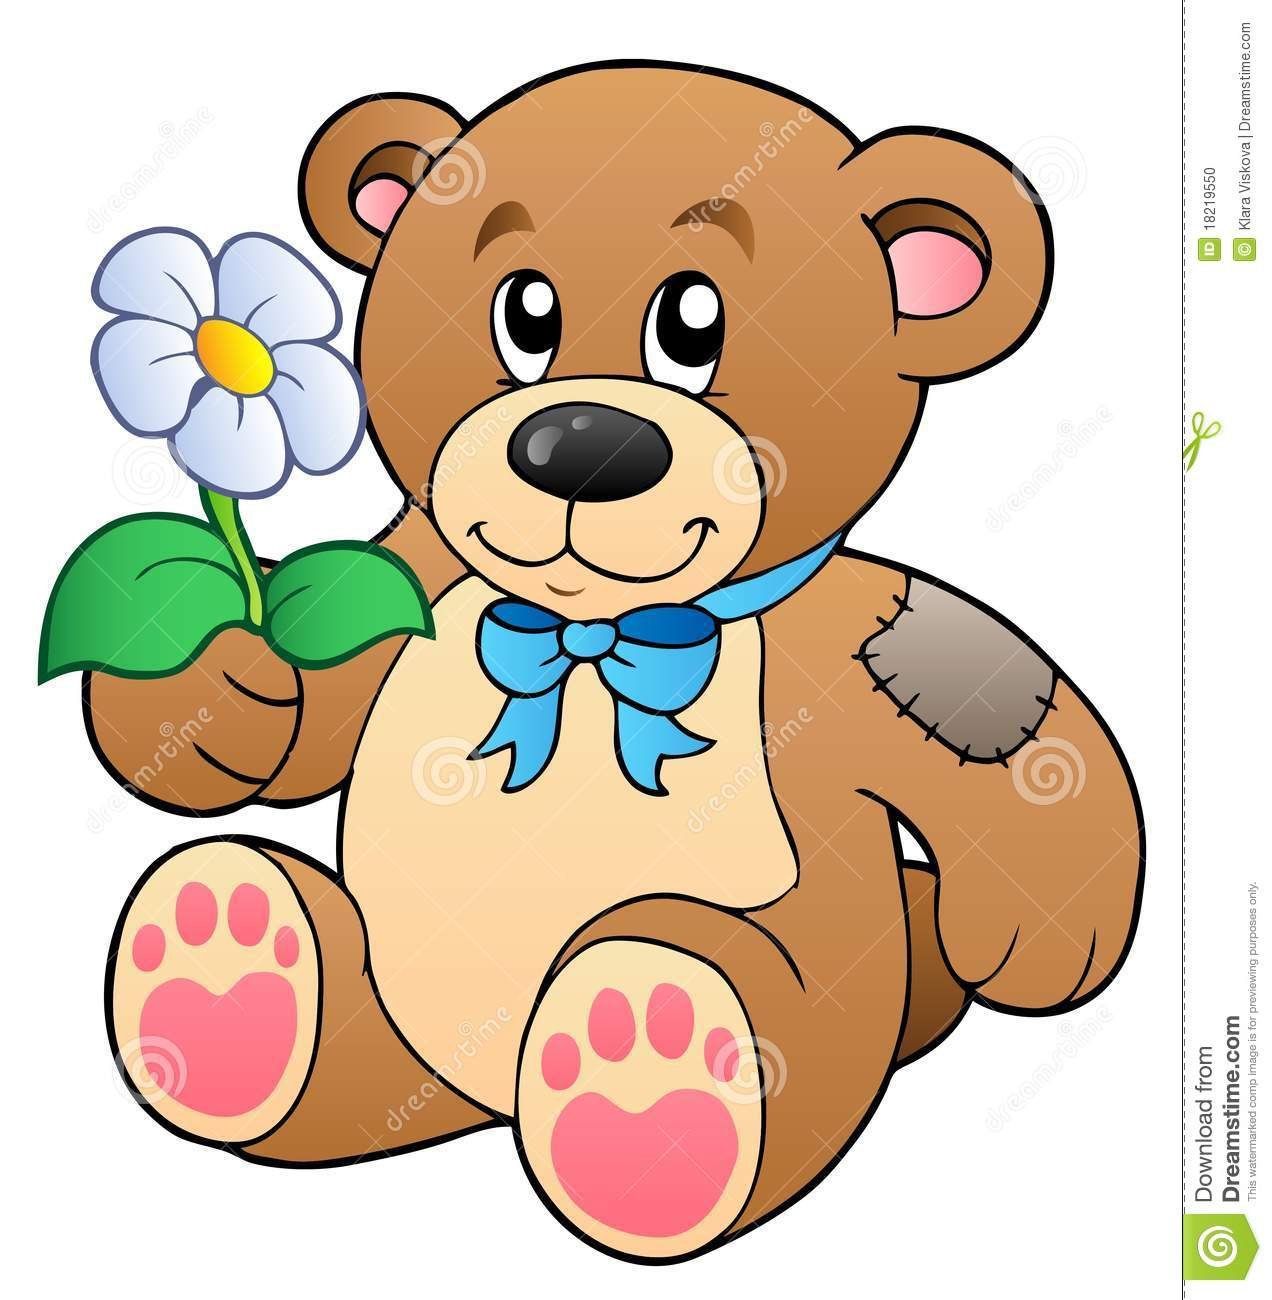 Cute Teddy Bear With Flower Stock Photo - Image: 18219550